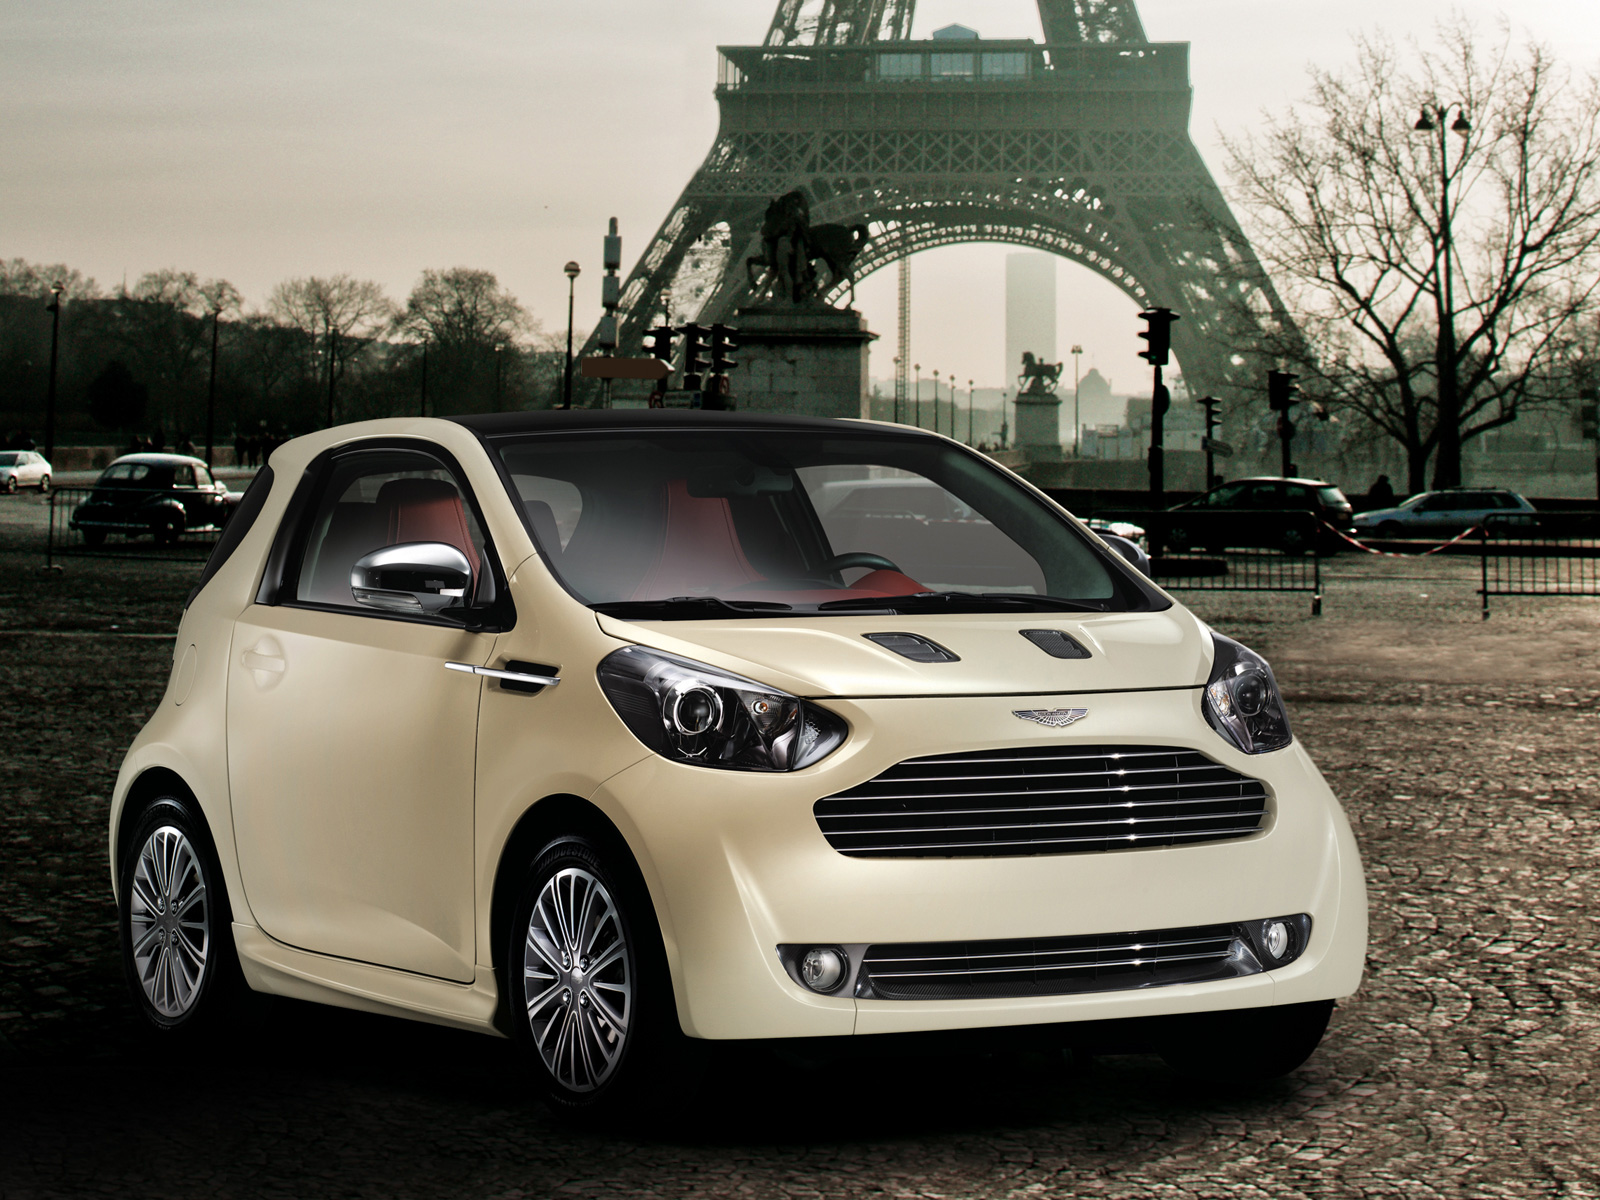 Aston-Martin Cygnet photo 13